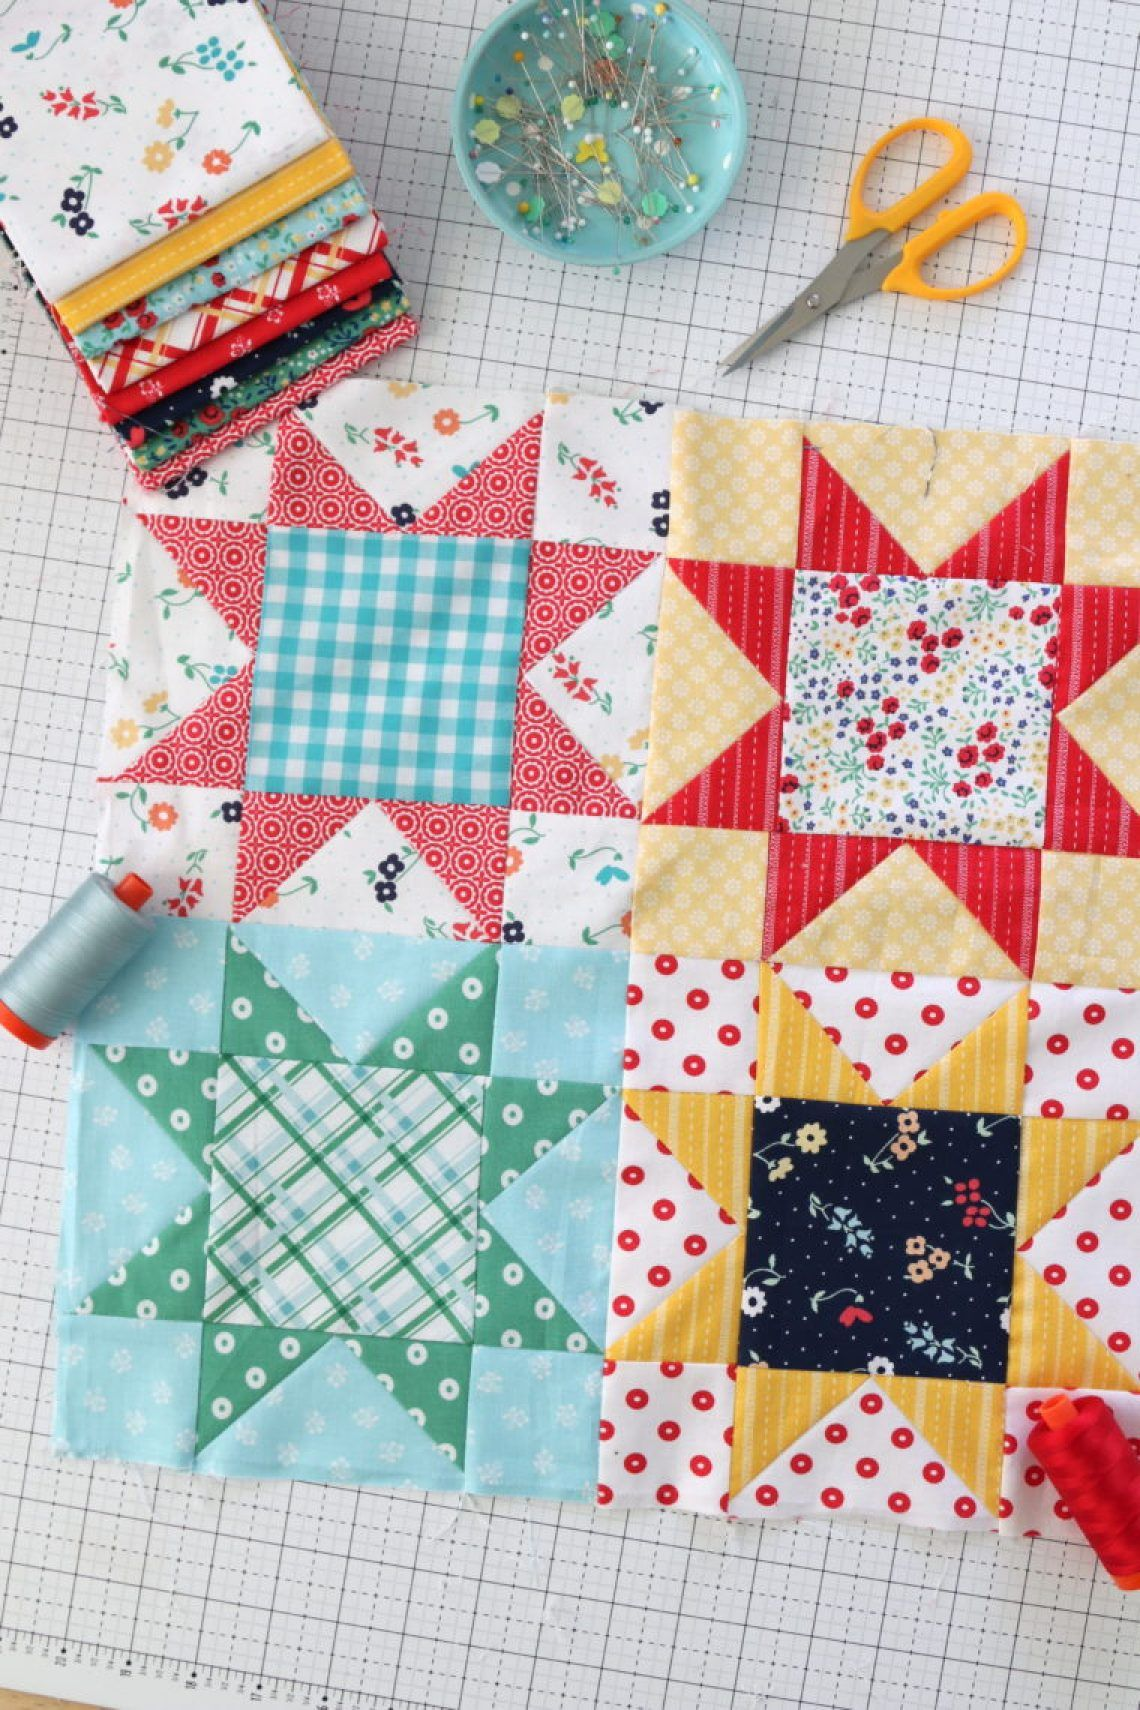 Sawtooth Star Quilt Block Tutorial | Diary of a Quilter - a quilt blog